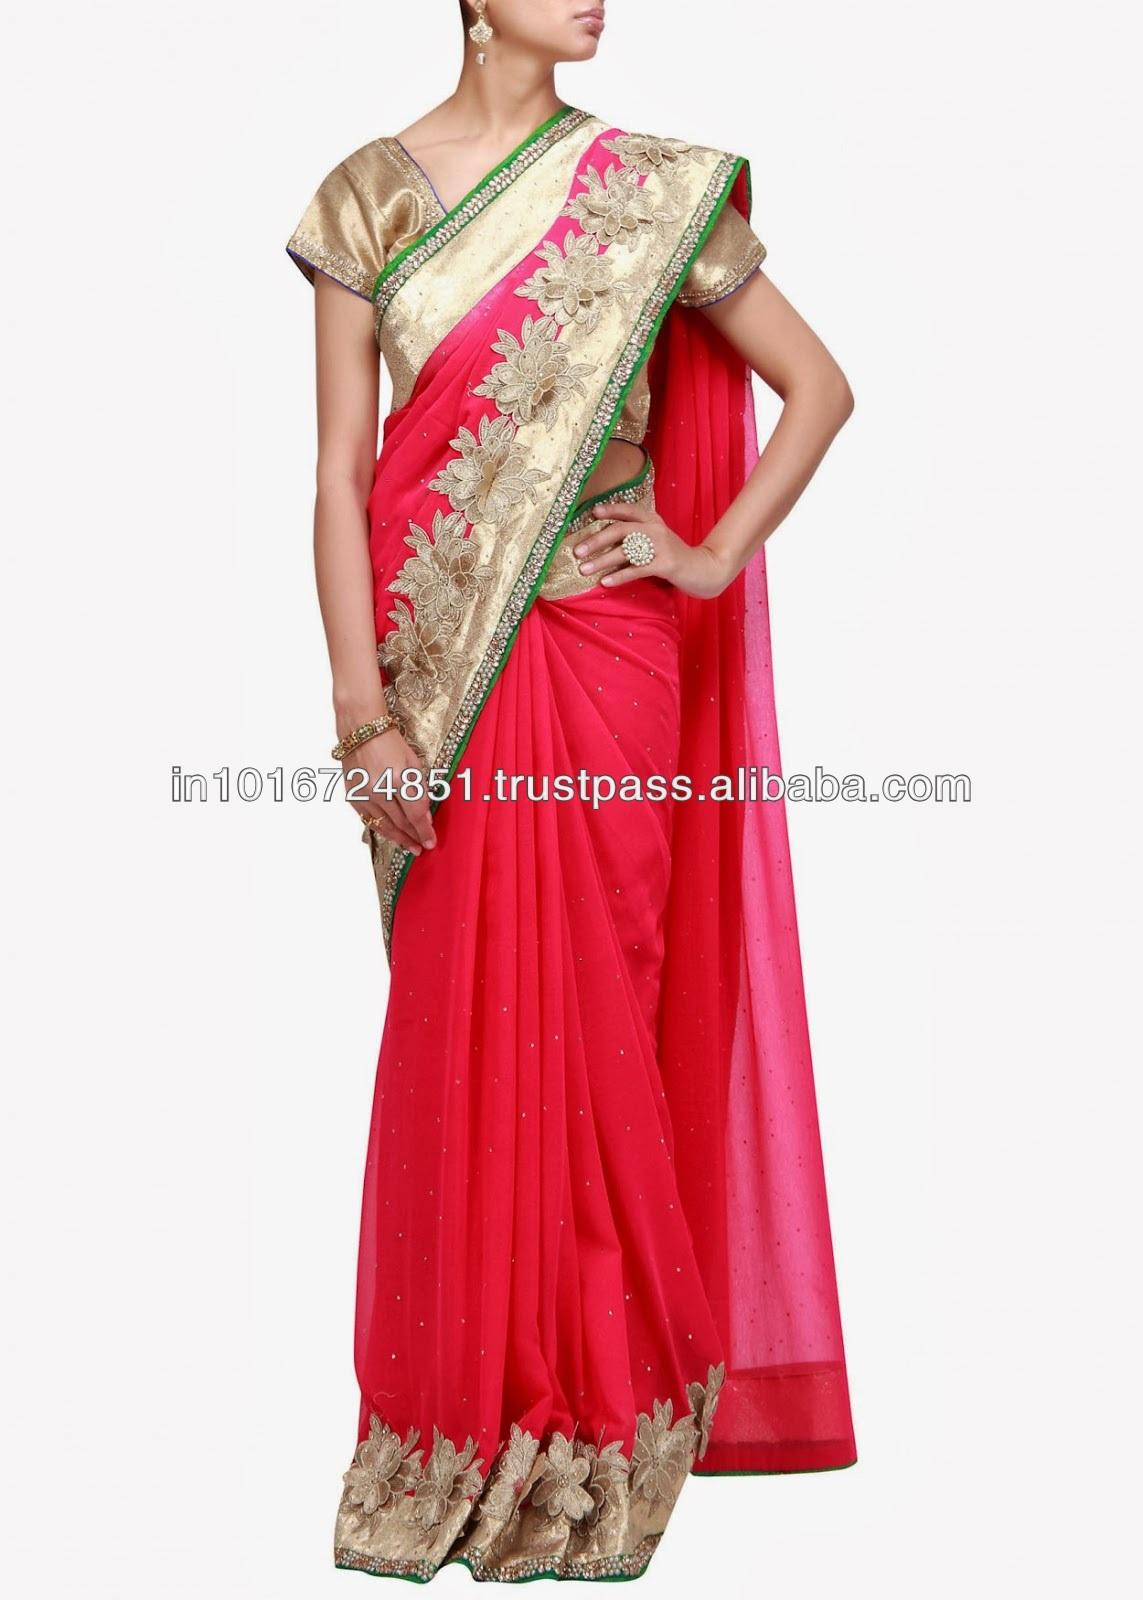 Indian Designer Red Applique saree 2017